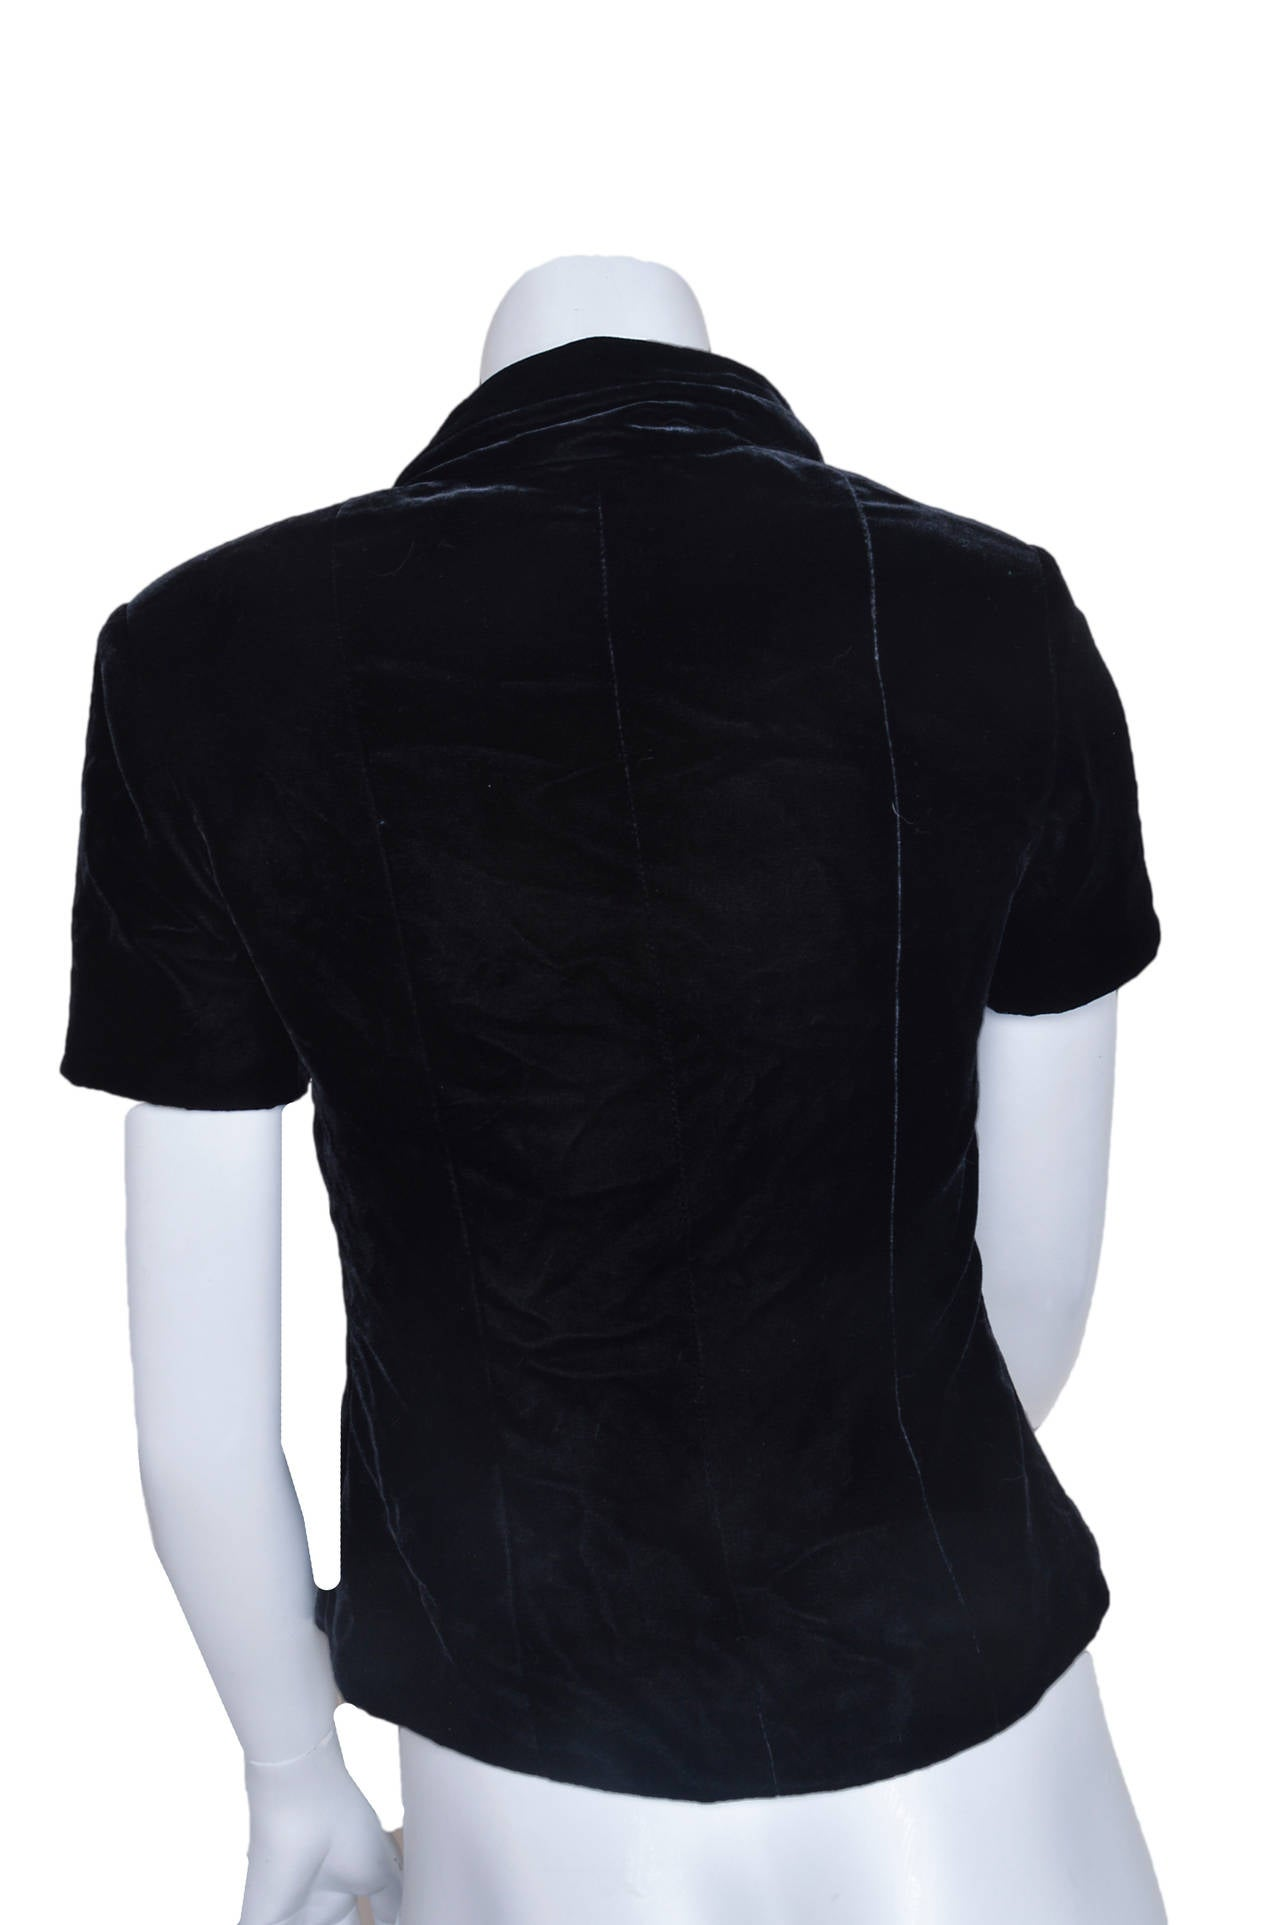 Chanel Boutique Black Velvet Formal Top 3